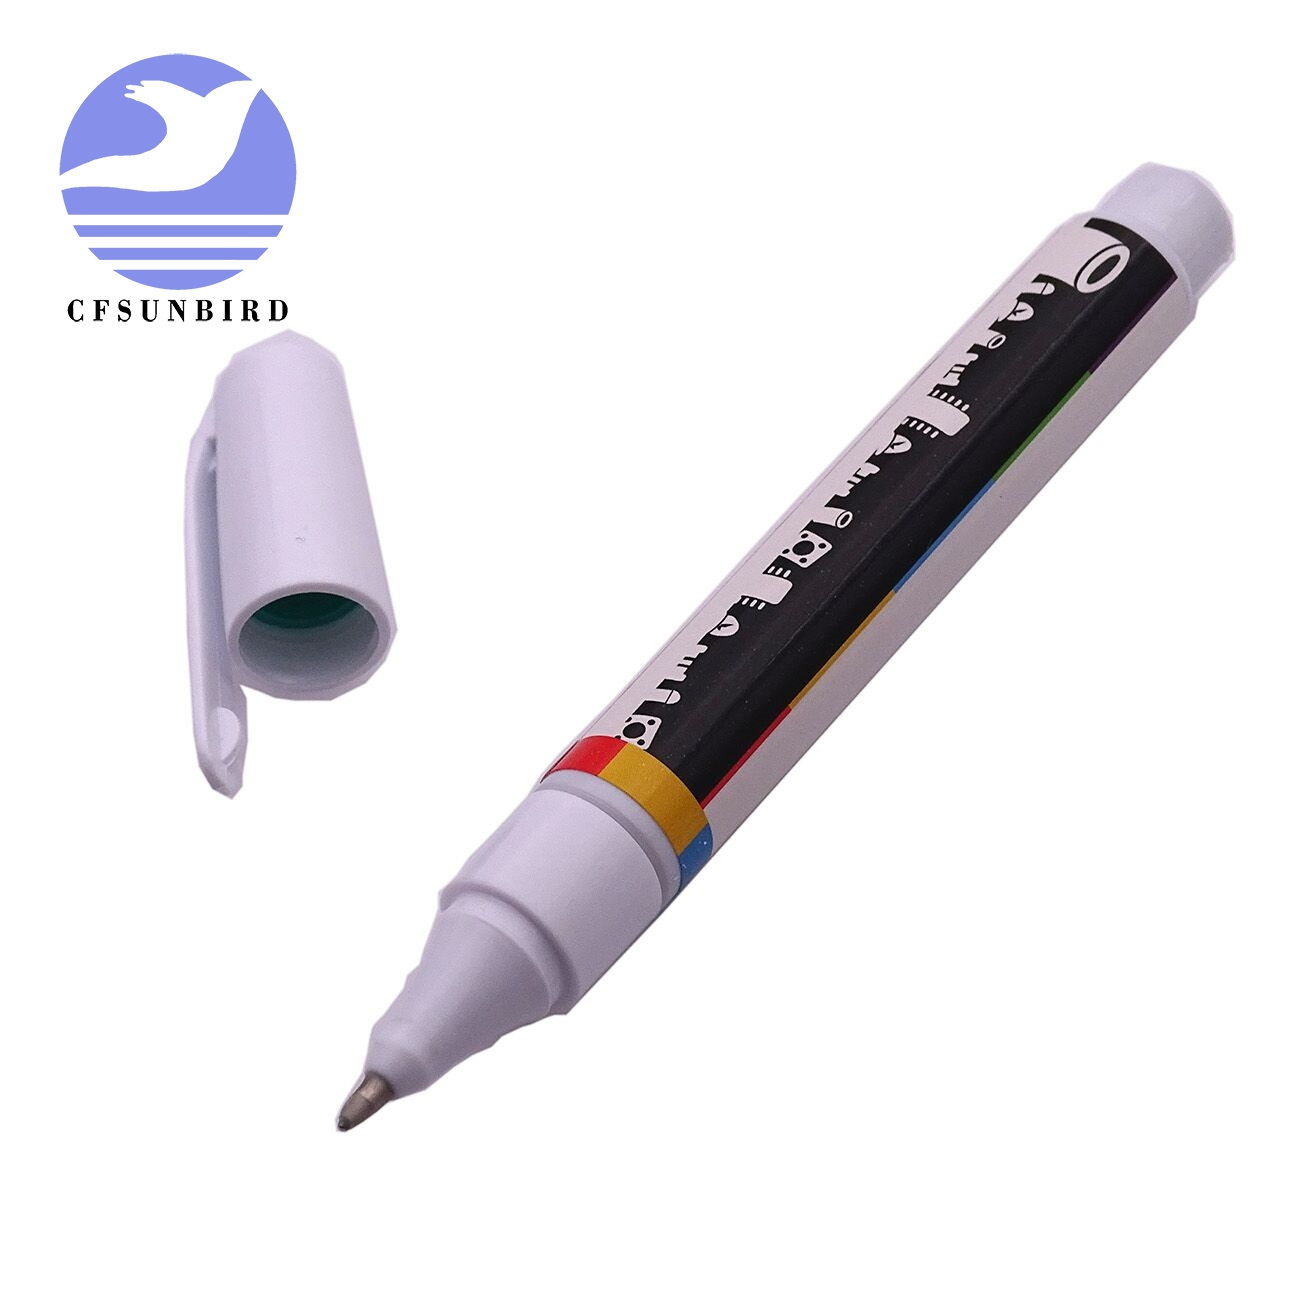 CFsunbird Conductive Ink Pen Electronic Circuit Draw Instantly Magical Pen Circuit DIY Maker Student Kids Education Black/Gold